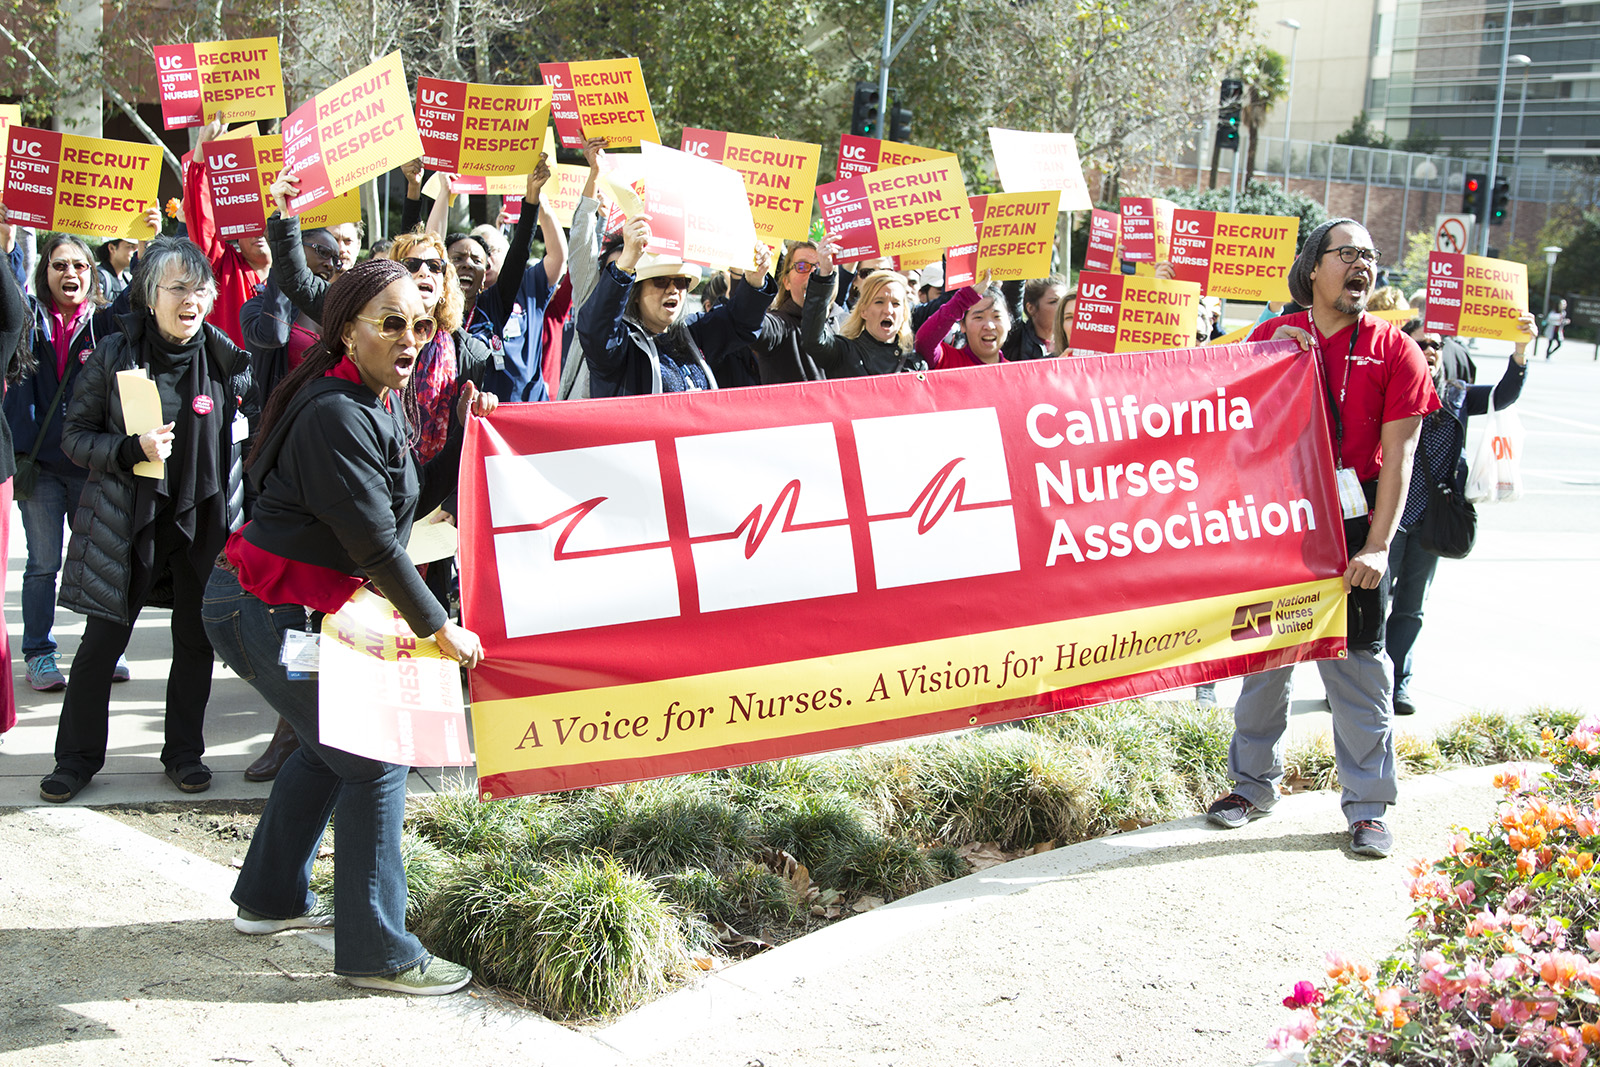 Nurses protest for new contract, better working conditions